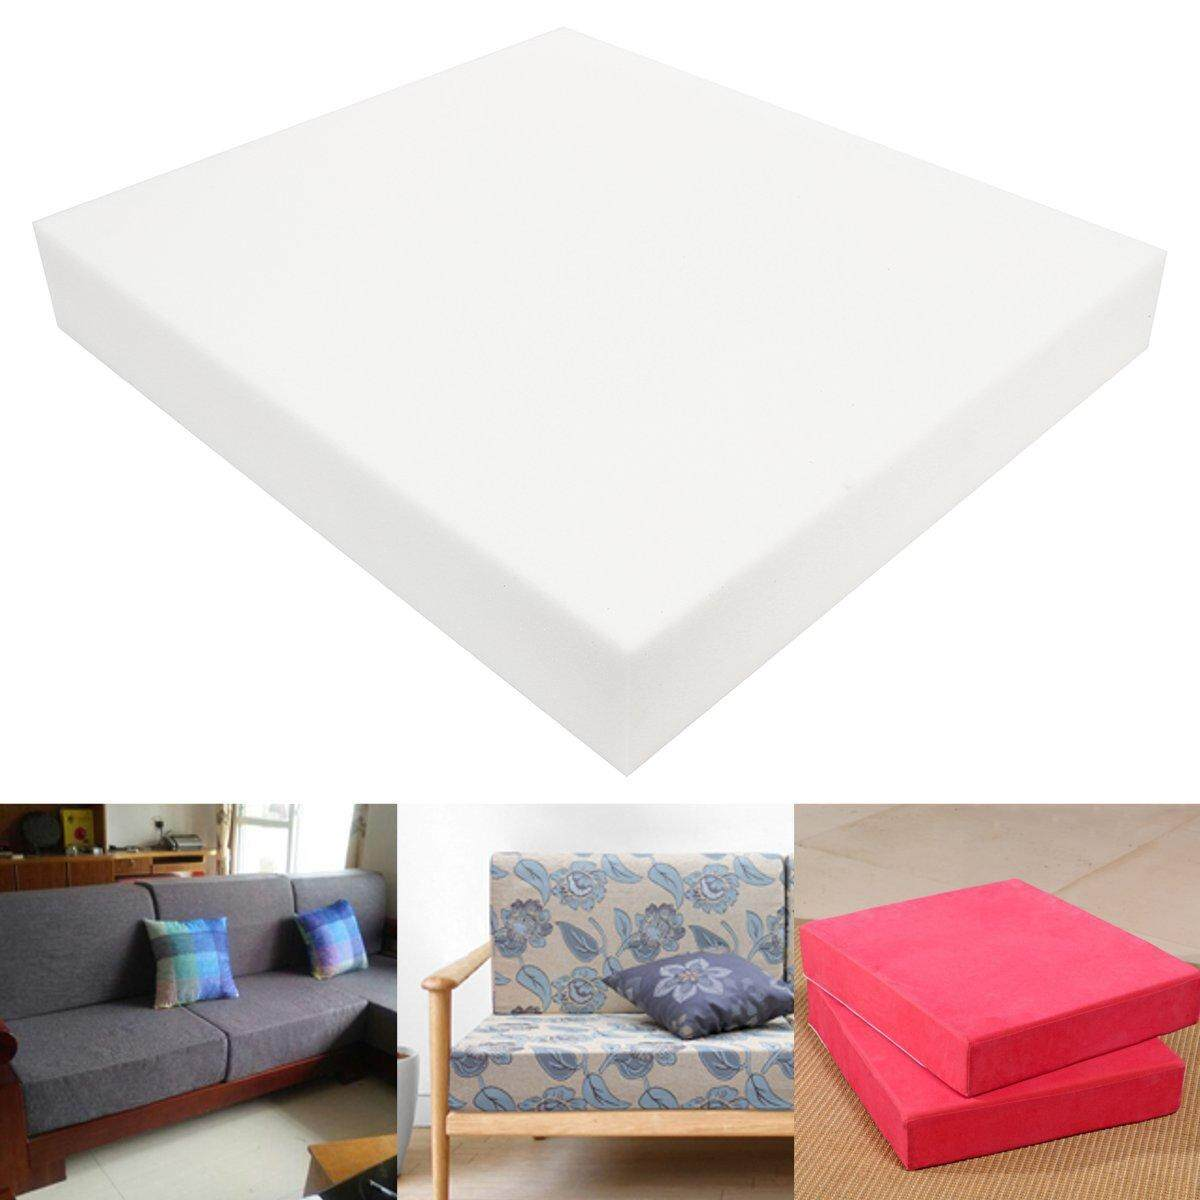 Square Foam Sheet Upholstery Cushion Replacement - Free Shipping  5cm By Glimmer.